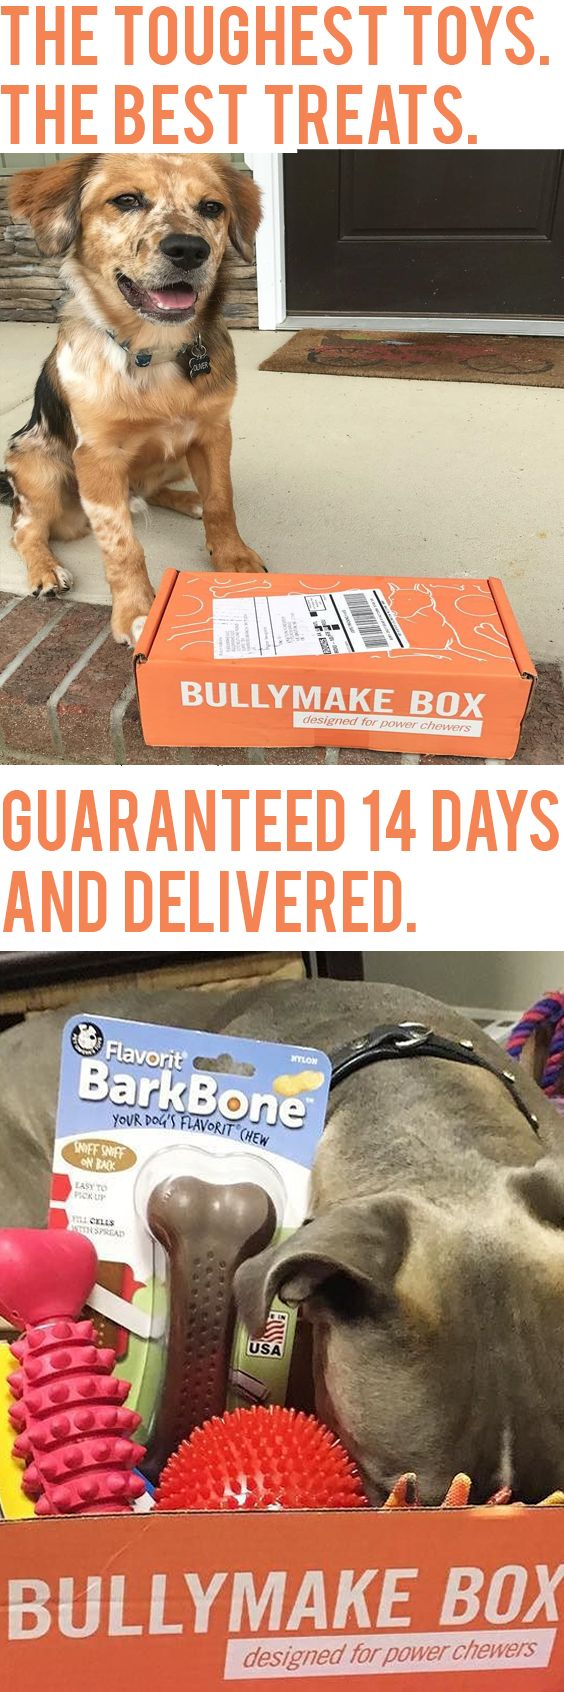 Is your dog a power chewer? Join 1000's and 1000's of other happy CHEWERS today and enjoy toys and treats delivered to your door.  Every toy guaranteed to last for 14 days or we replace them FOR FREE! See here: http://bullymake.com/vidlanding2/?utm_source=pinterest&utm_medium=pinterest-ads&utm_campaign=jun28-camp-all&utm_term=jun28-camp-all&utm_content=jun28-camp-all